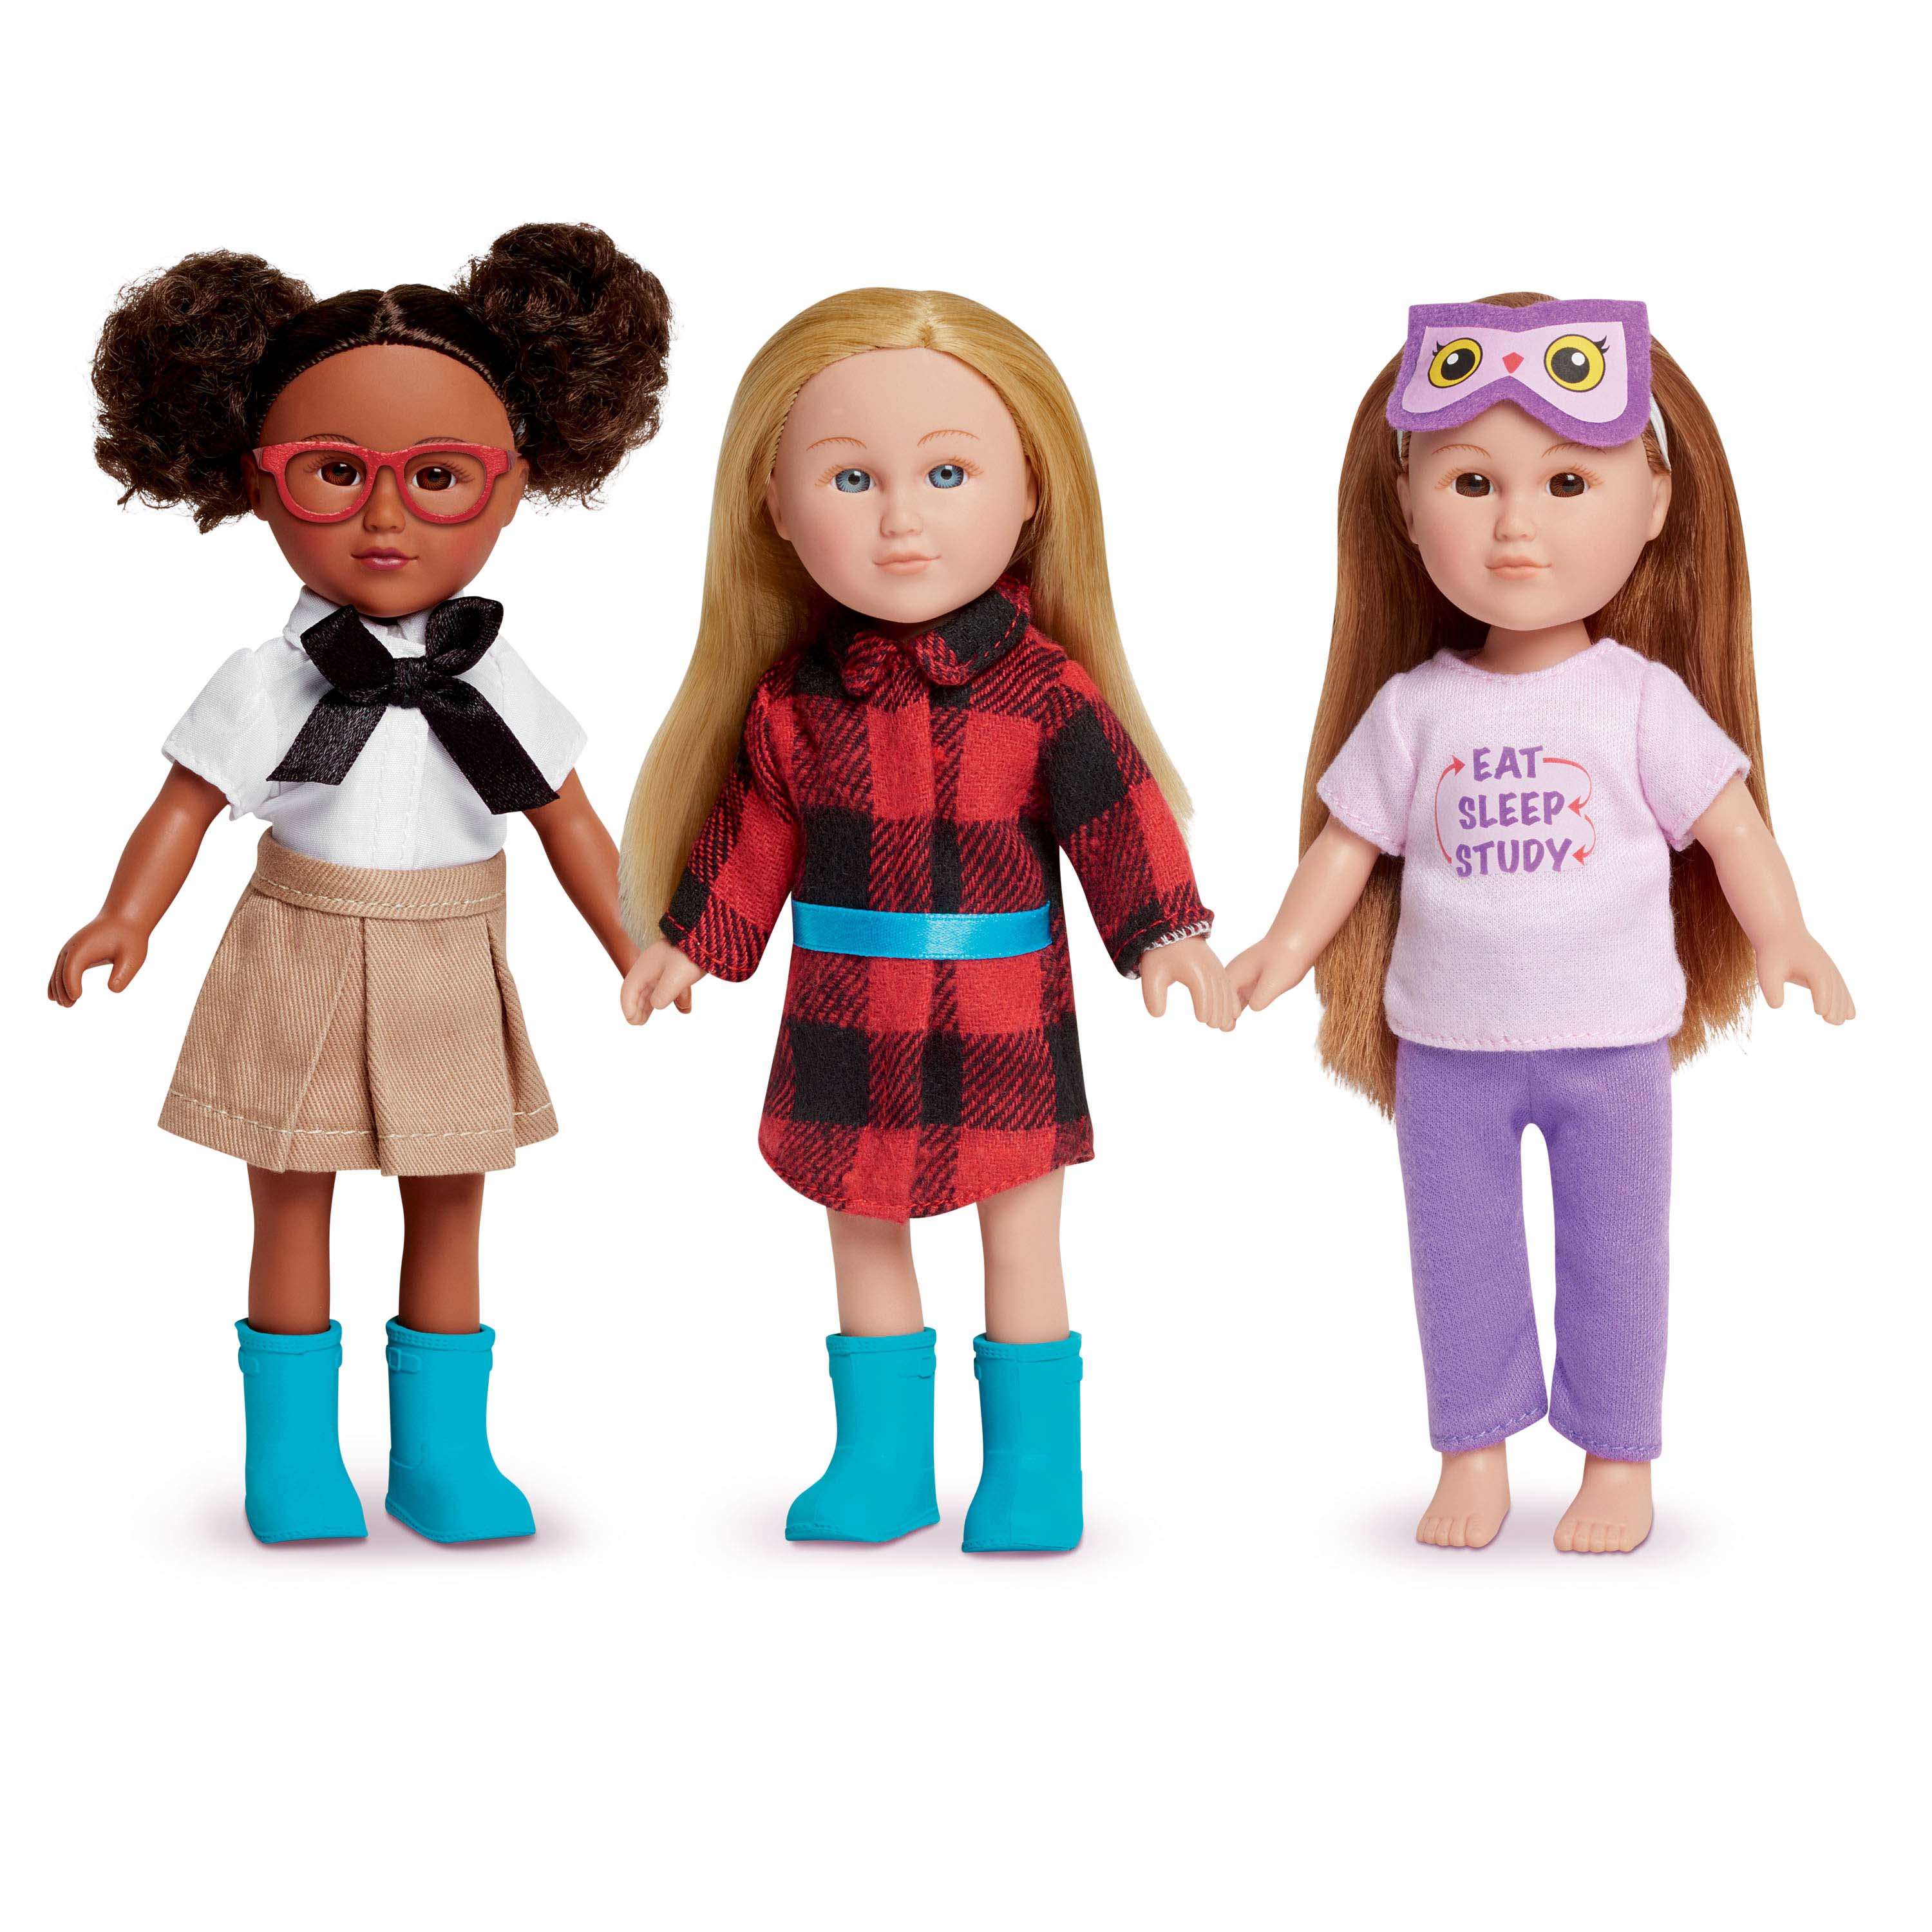 My Life As 7-inch Mini Doll Clothing Fashion Pack - School Girl Theme